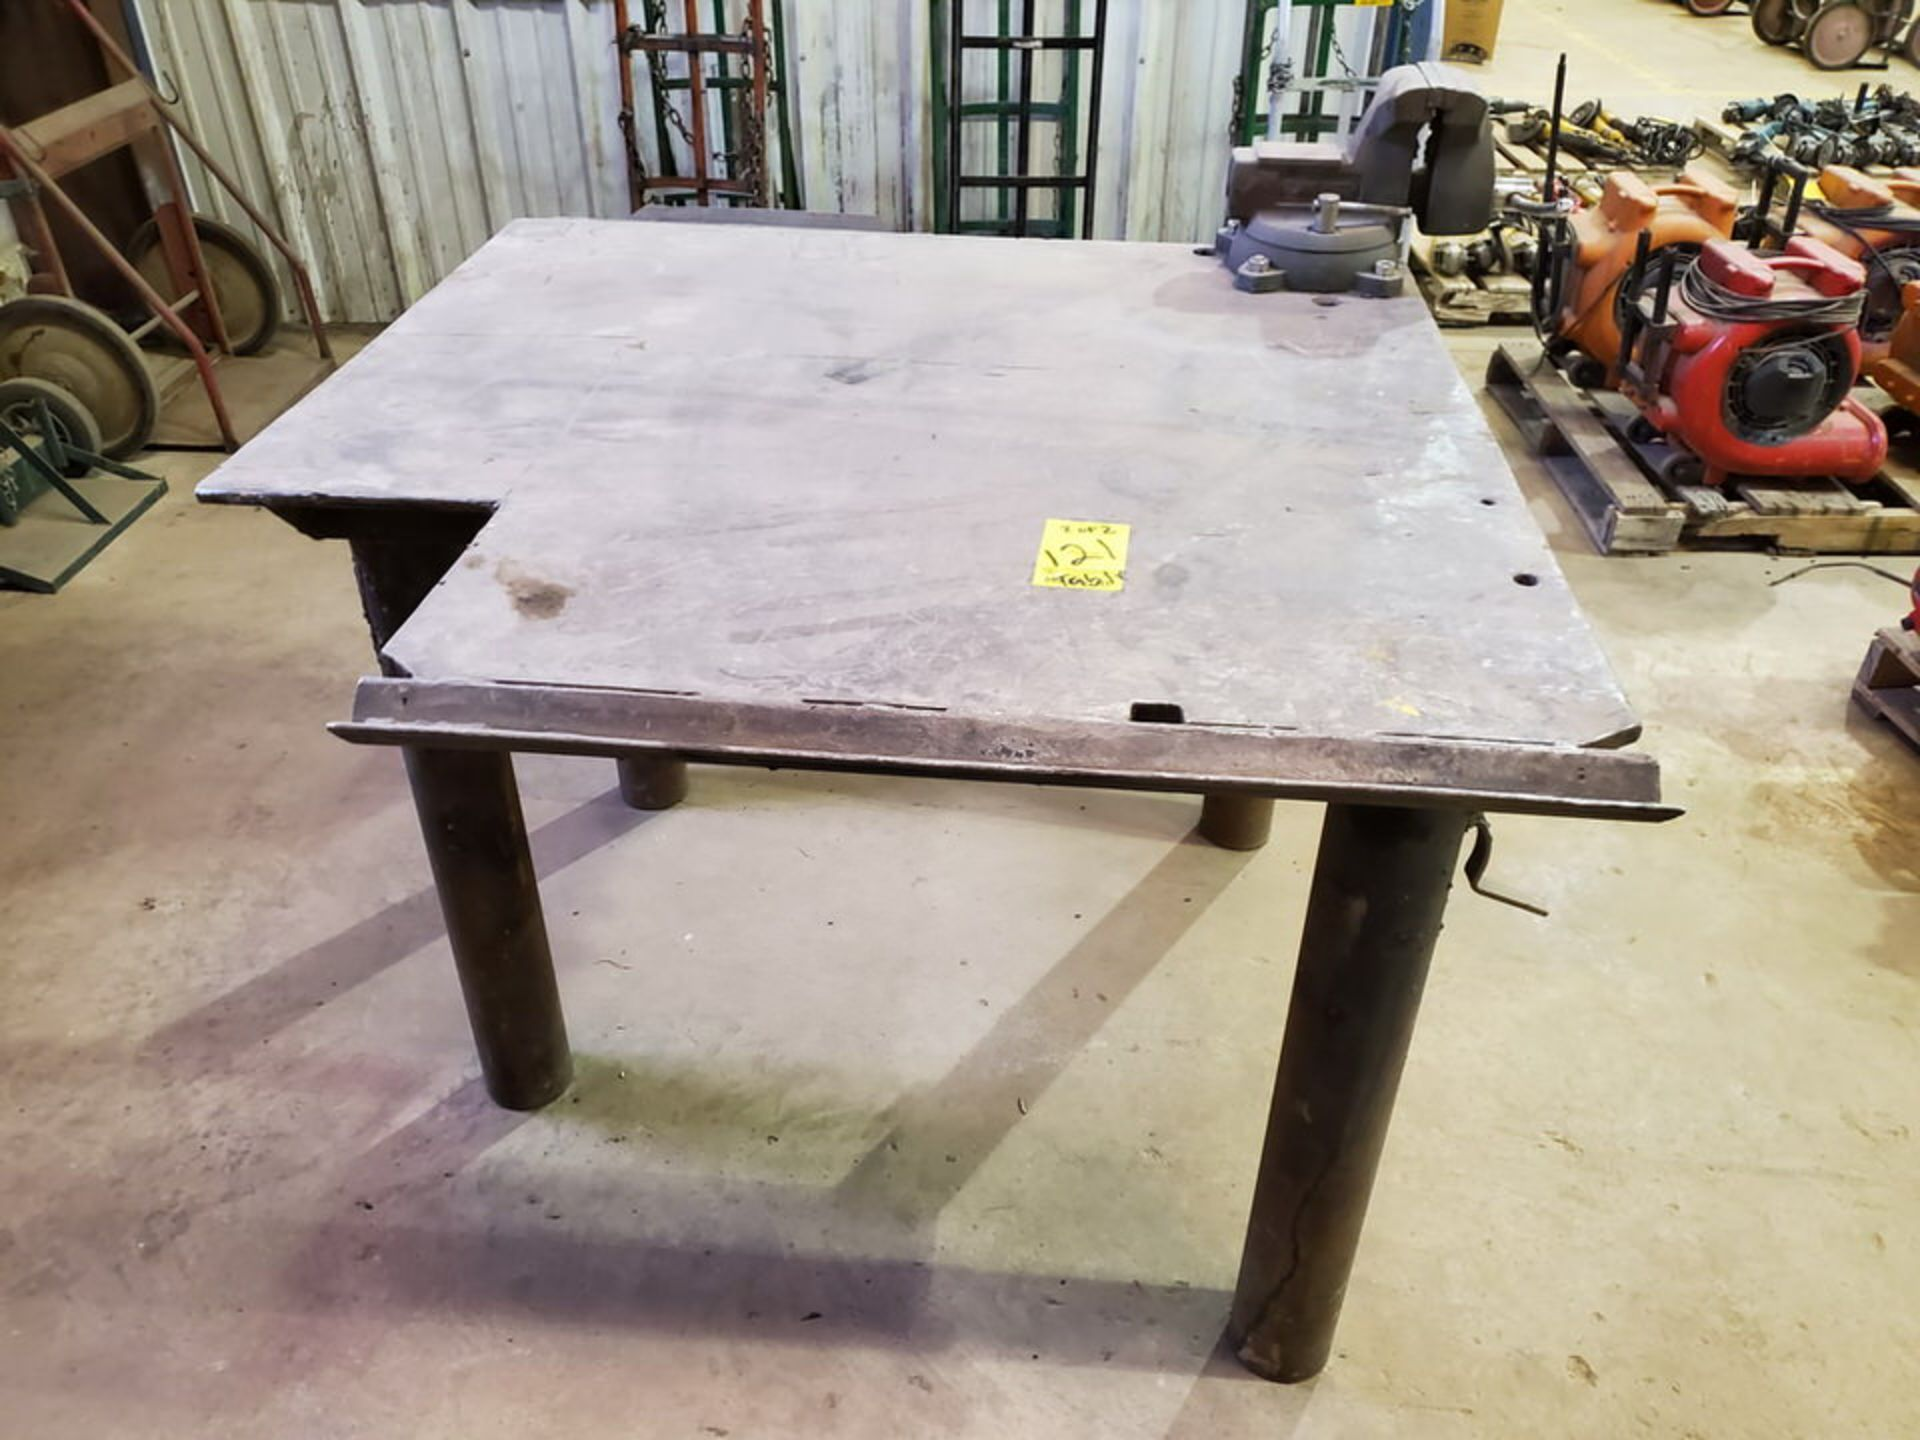 "(2) Stl Welding Tables (1) 49"" x 55"" x 36""H, W/ 6"" Vise; (1) 48"" x 72"" x 36""H (Matl. Excluded)"